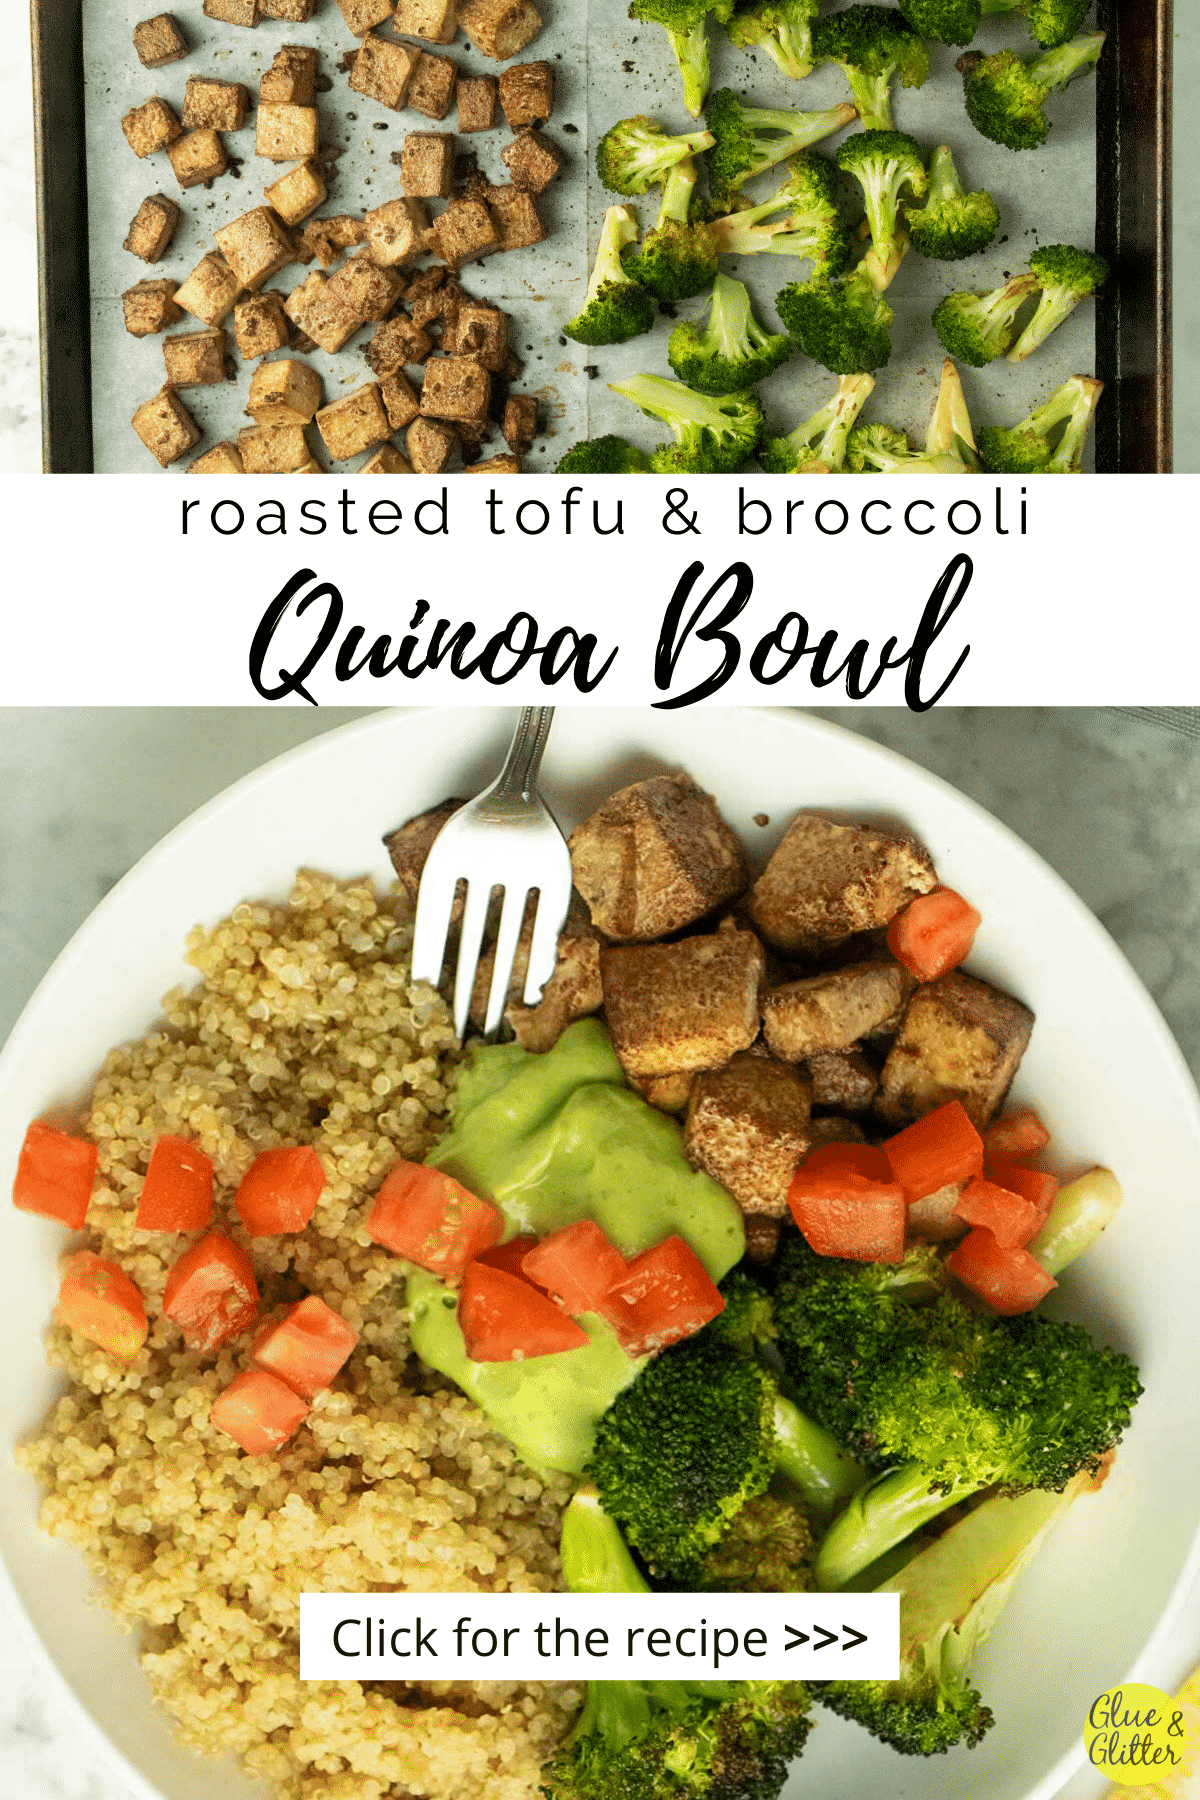 quinoa bowl with roasted tofu and broccoli topped with pesto and tomatoes